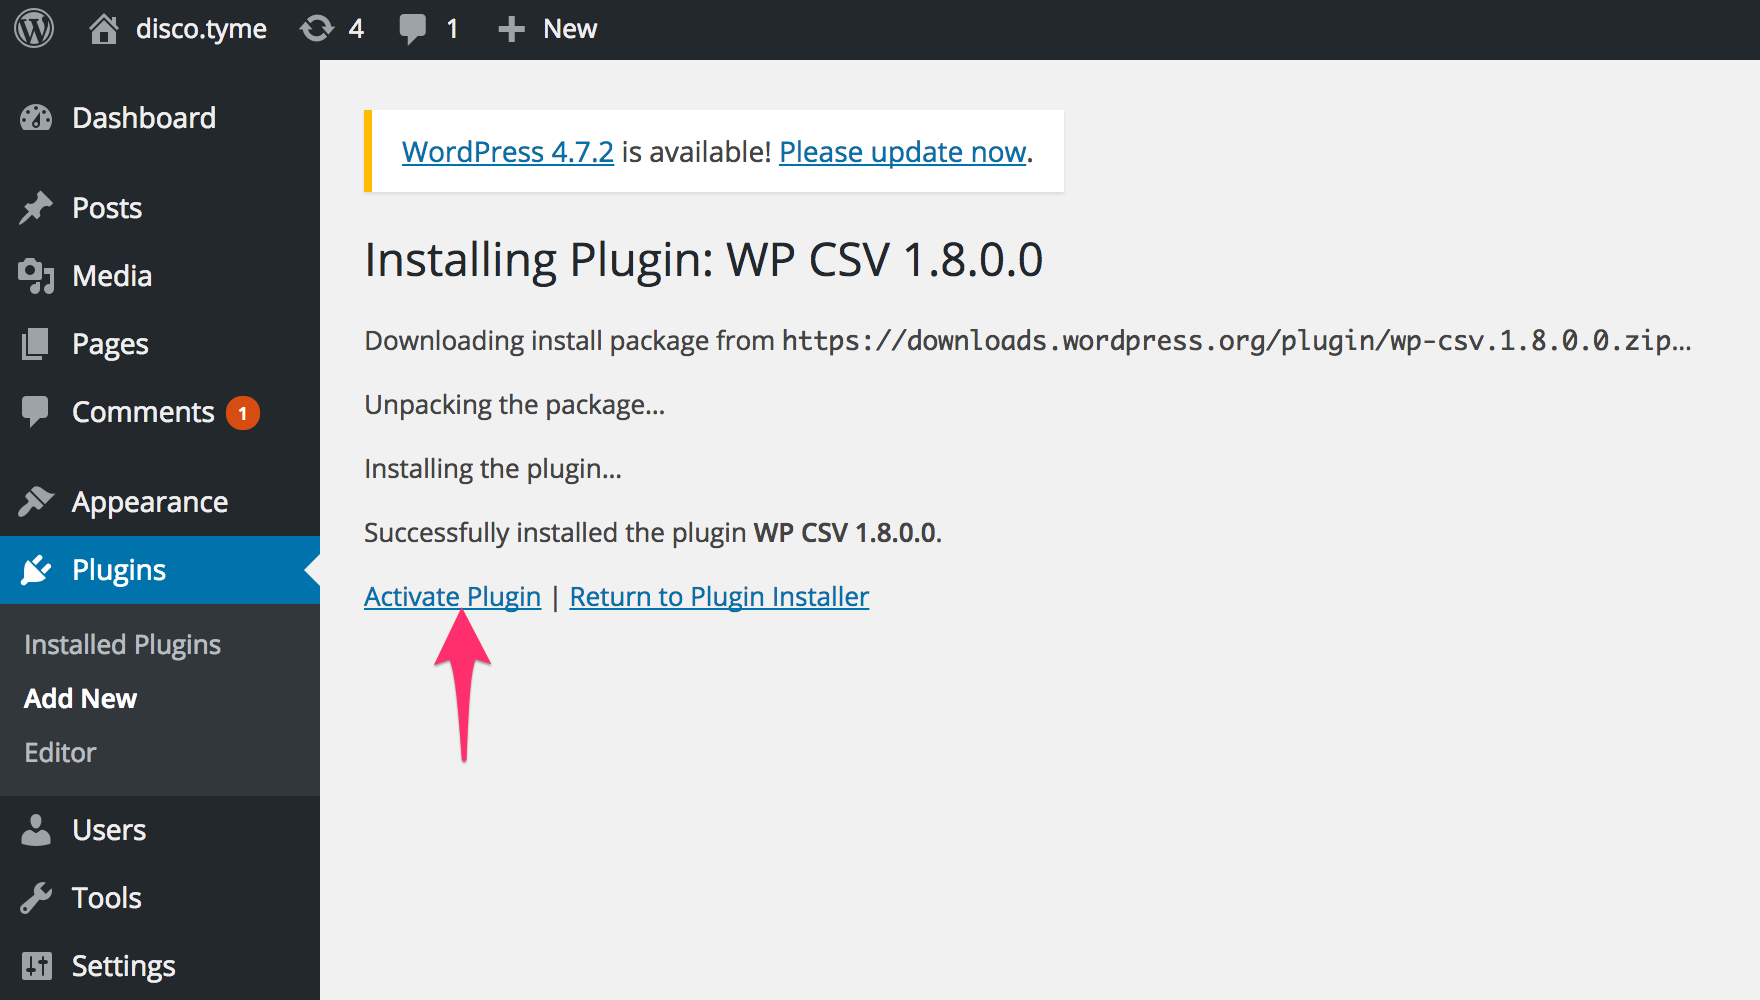 You need to activate the plugin to use it on your site.